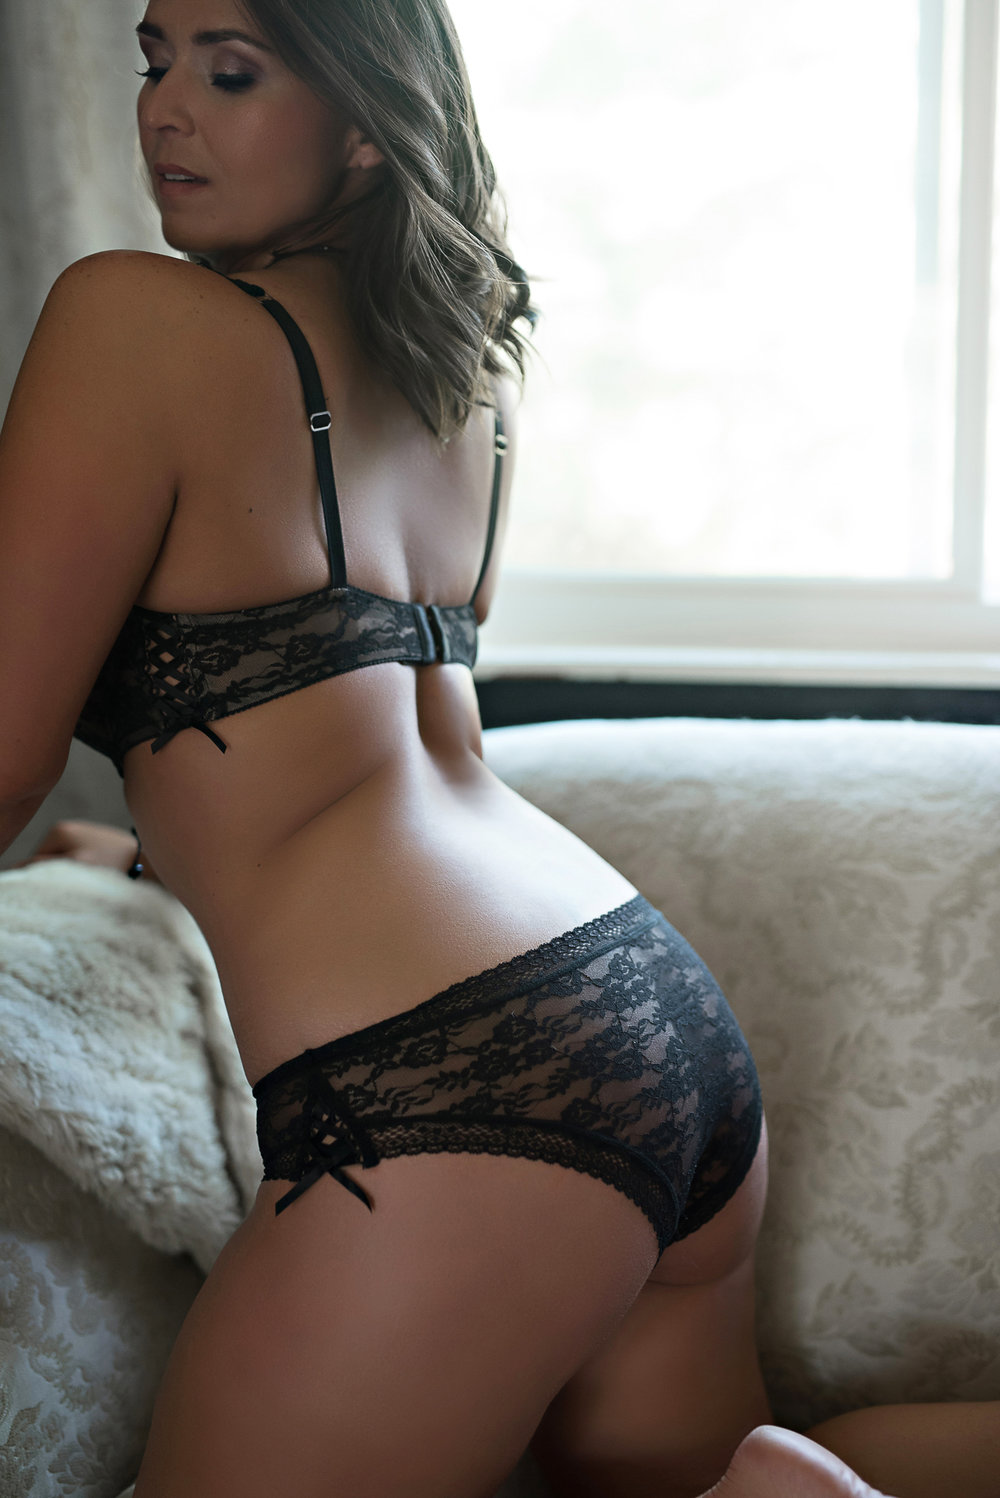 Denver boudoir photo shoot of woman with dark hair and boudoir outfit